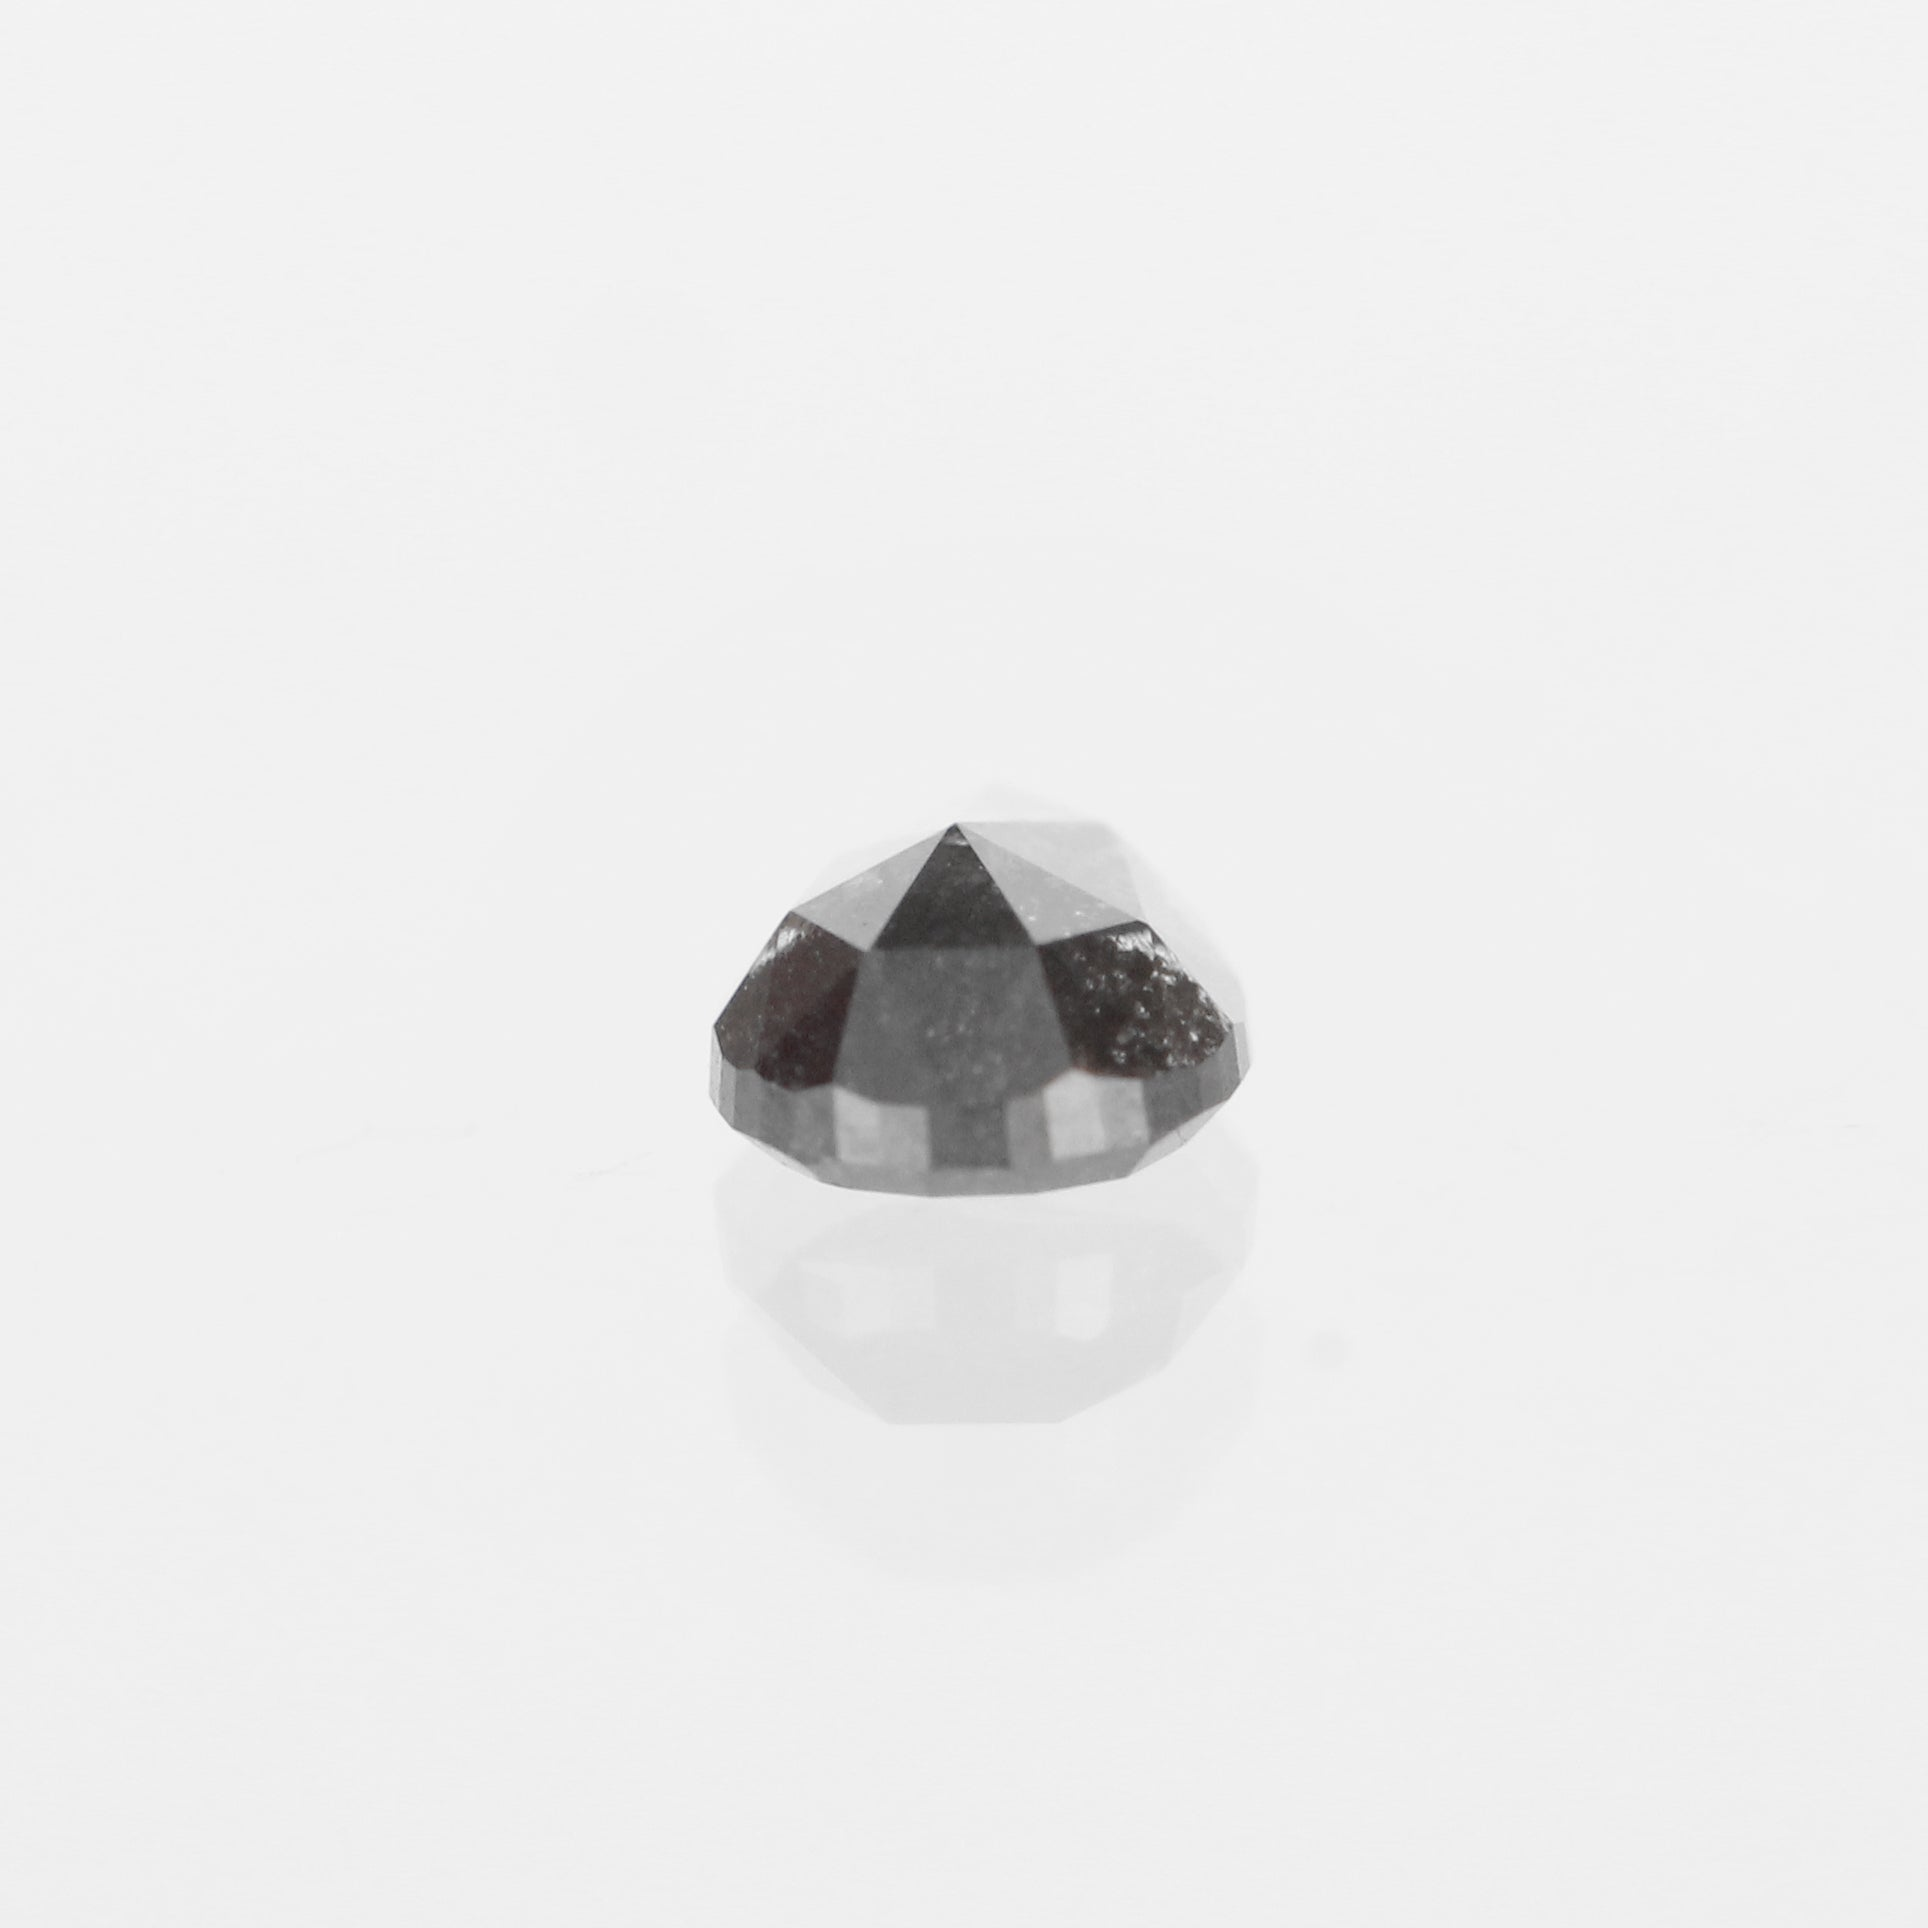 .81 Carat Pear Celestial Diamond® for Custom Work - Inventory Code DGPR81 - Celestial Diamonds ® by Midwinter Co.